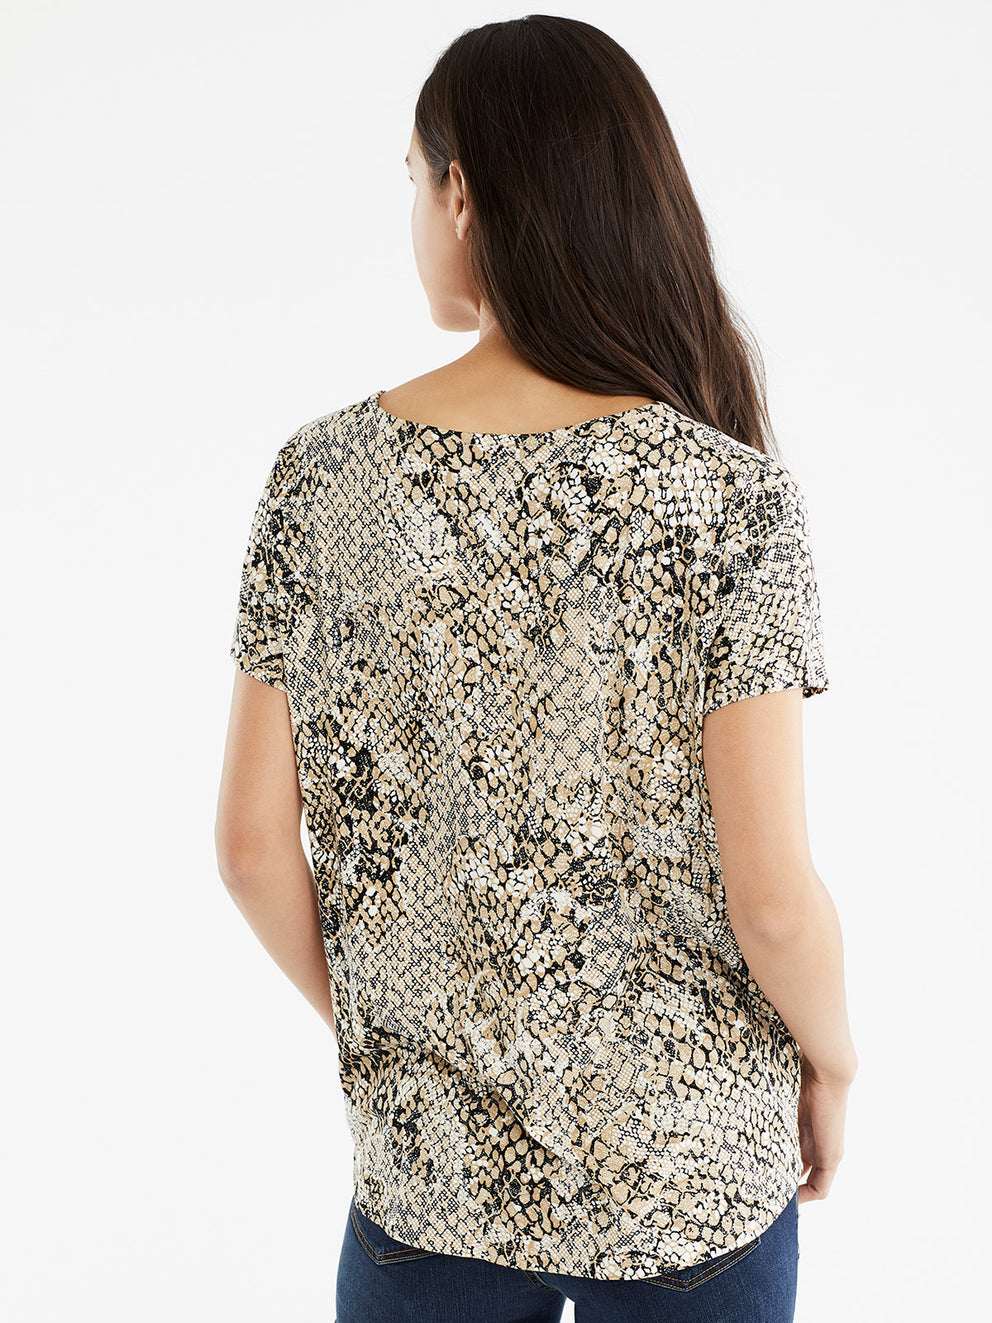 The Jones New York Draped Dolman Sleeve Top in color Beige Snake Combo - Image Position 3